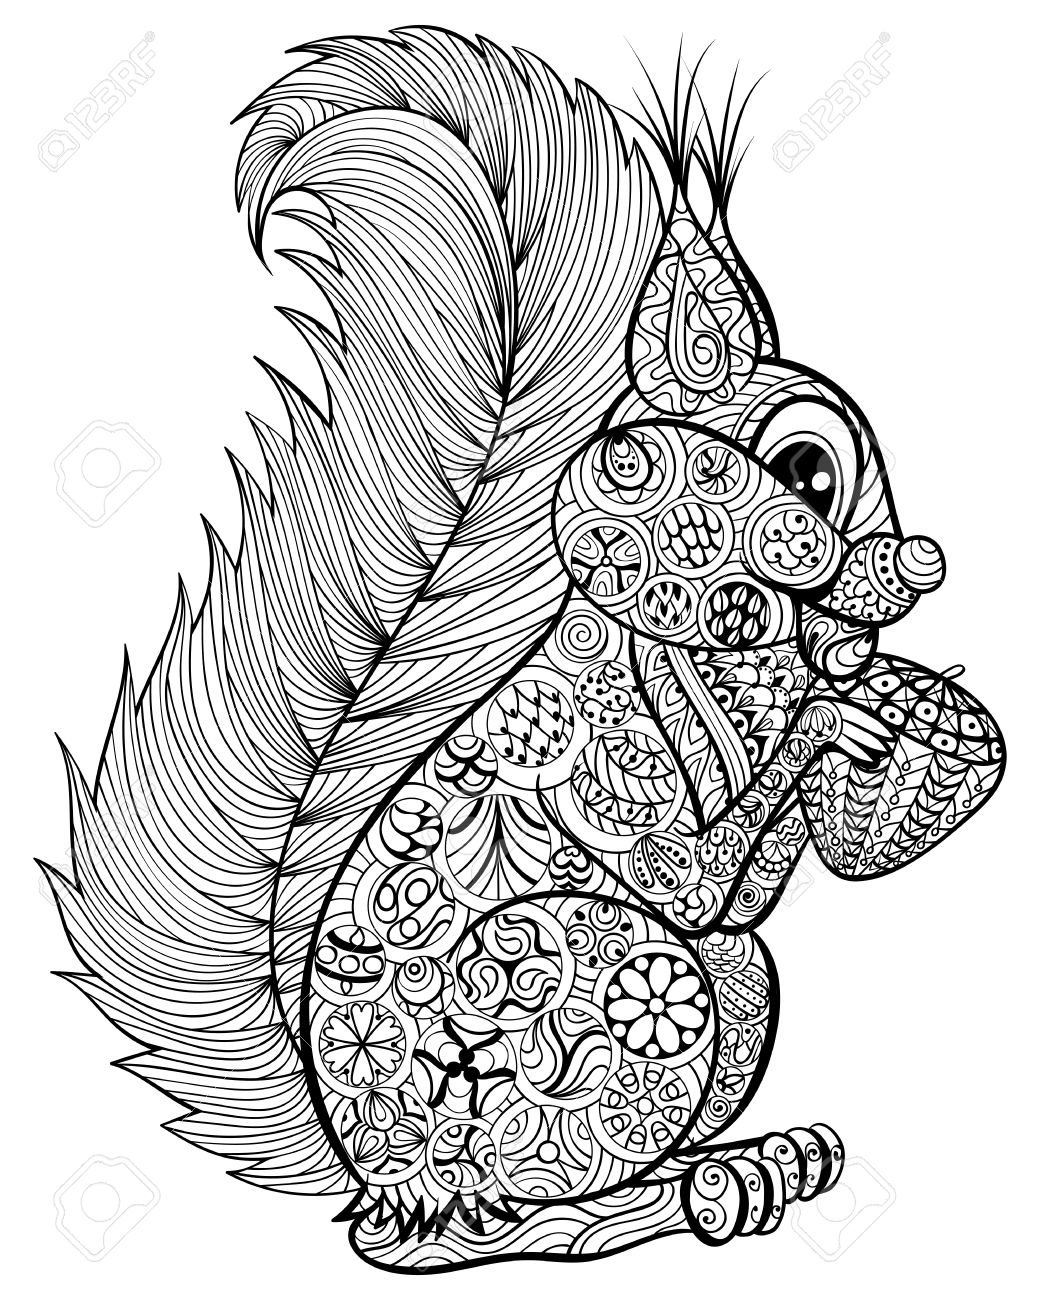 Hand Drawn Funny Squirrel With Nut For Adult Anti Stress Coloring Page High Details Isolated